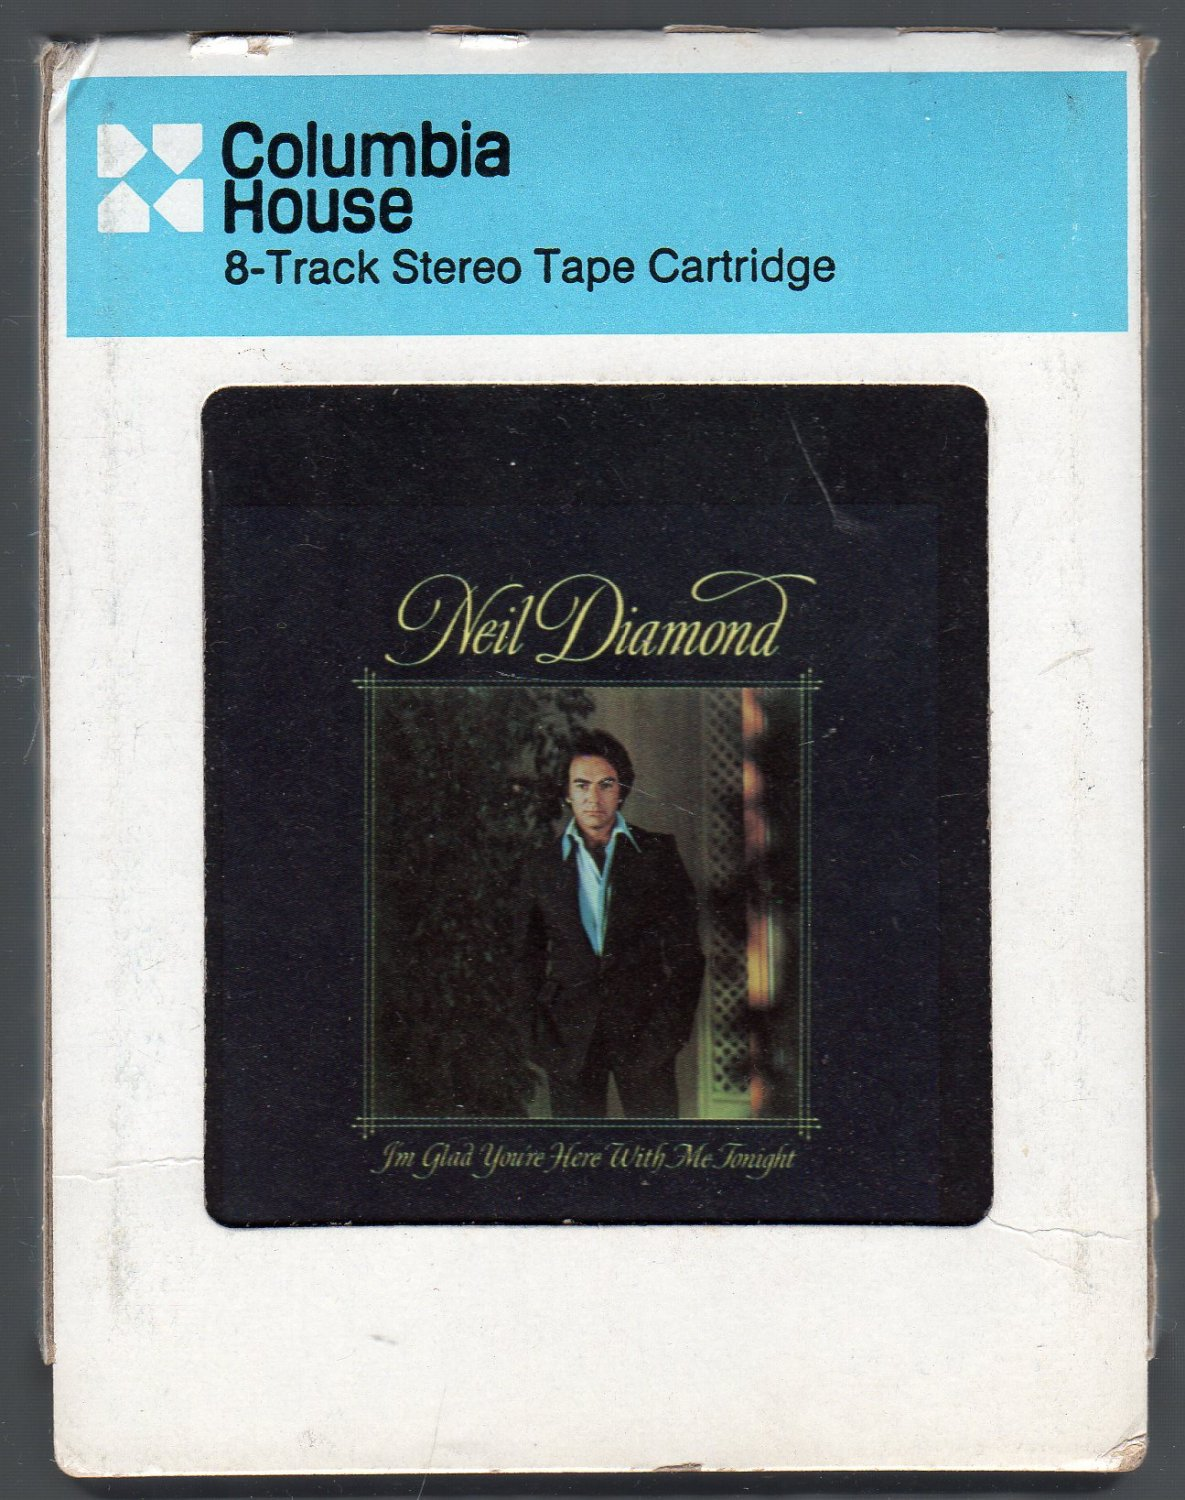 Neil Diamond - I'm Glad You're Here With Me Tonight CRC 8-track tape